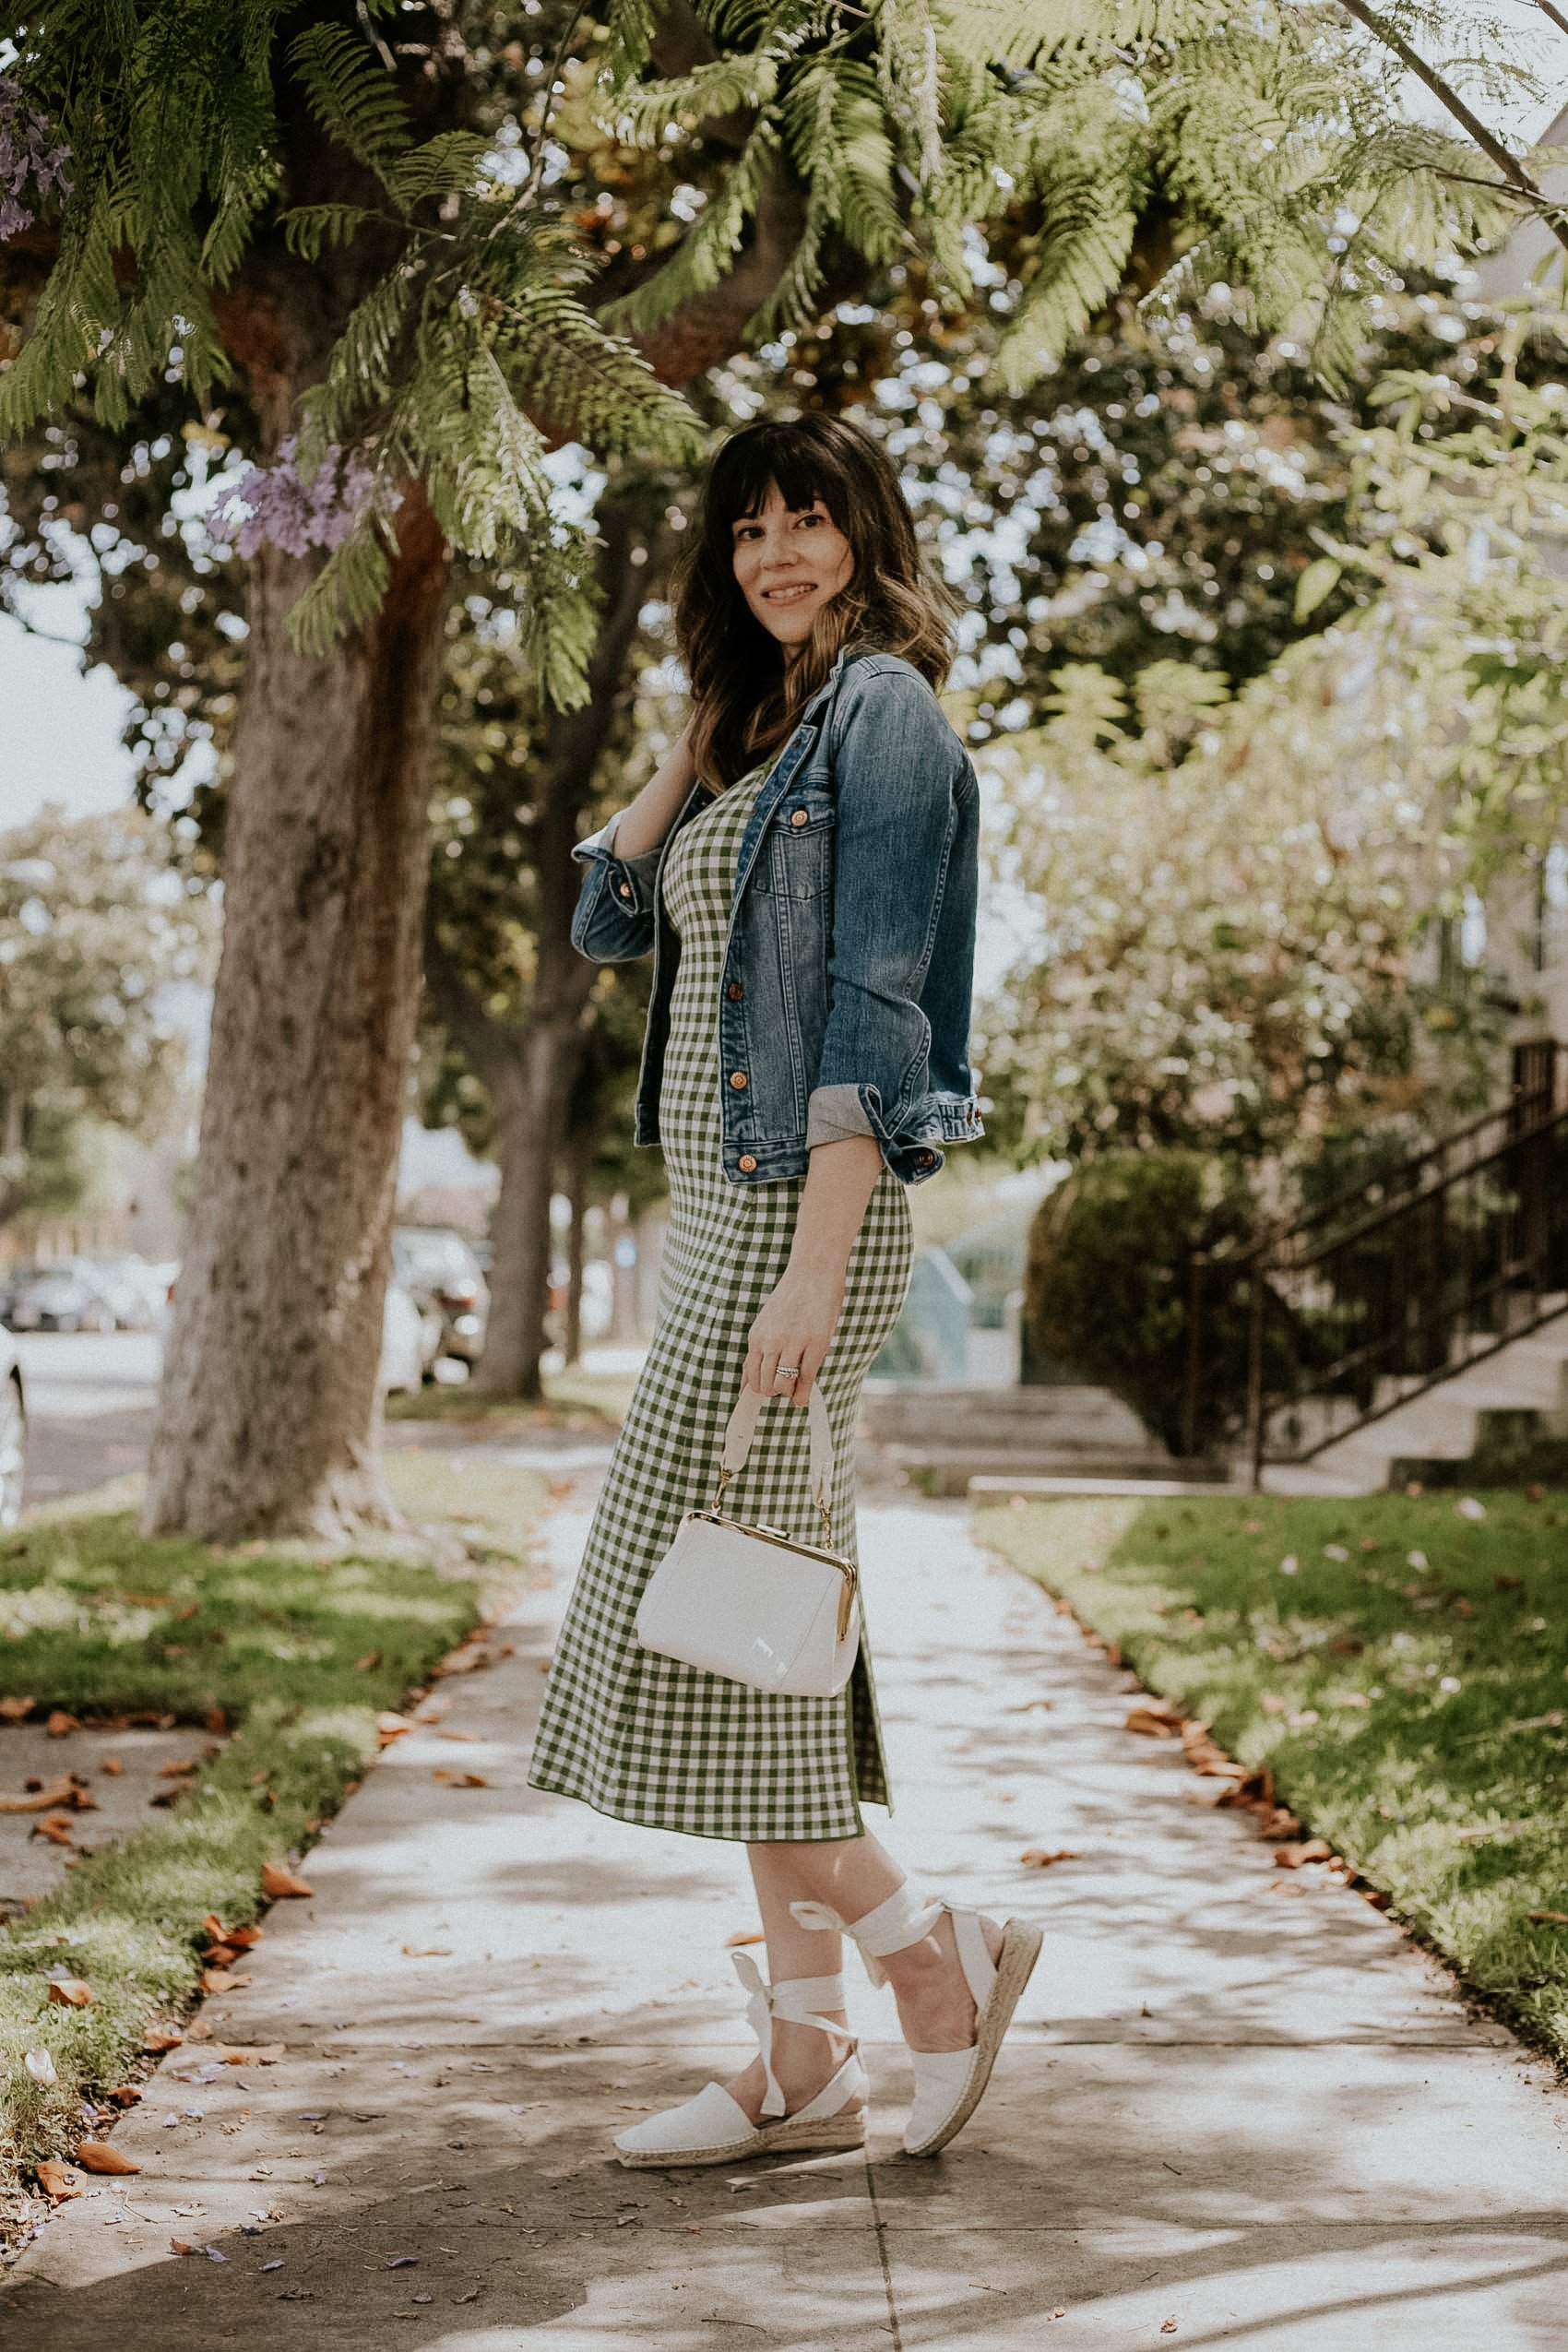 How to Style a gingham dress, denim jacket, espadrille sandals